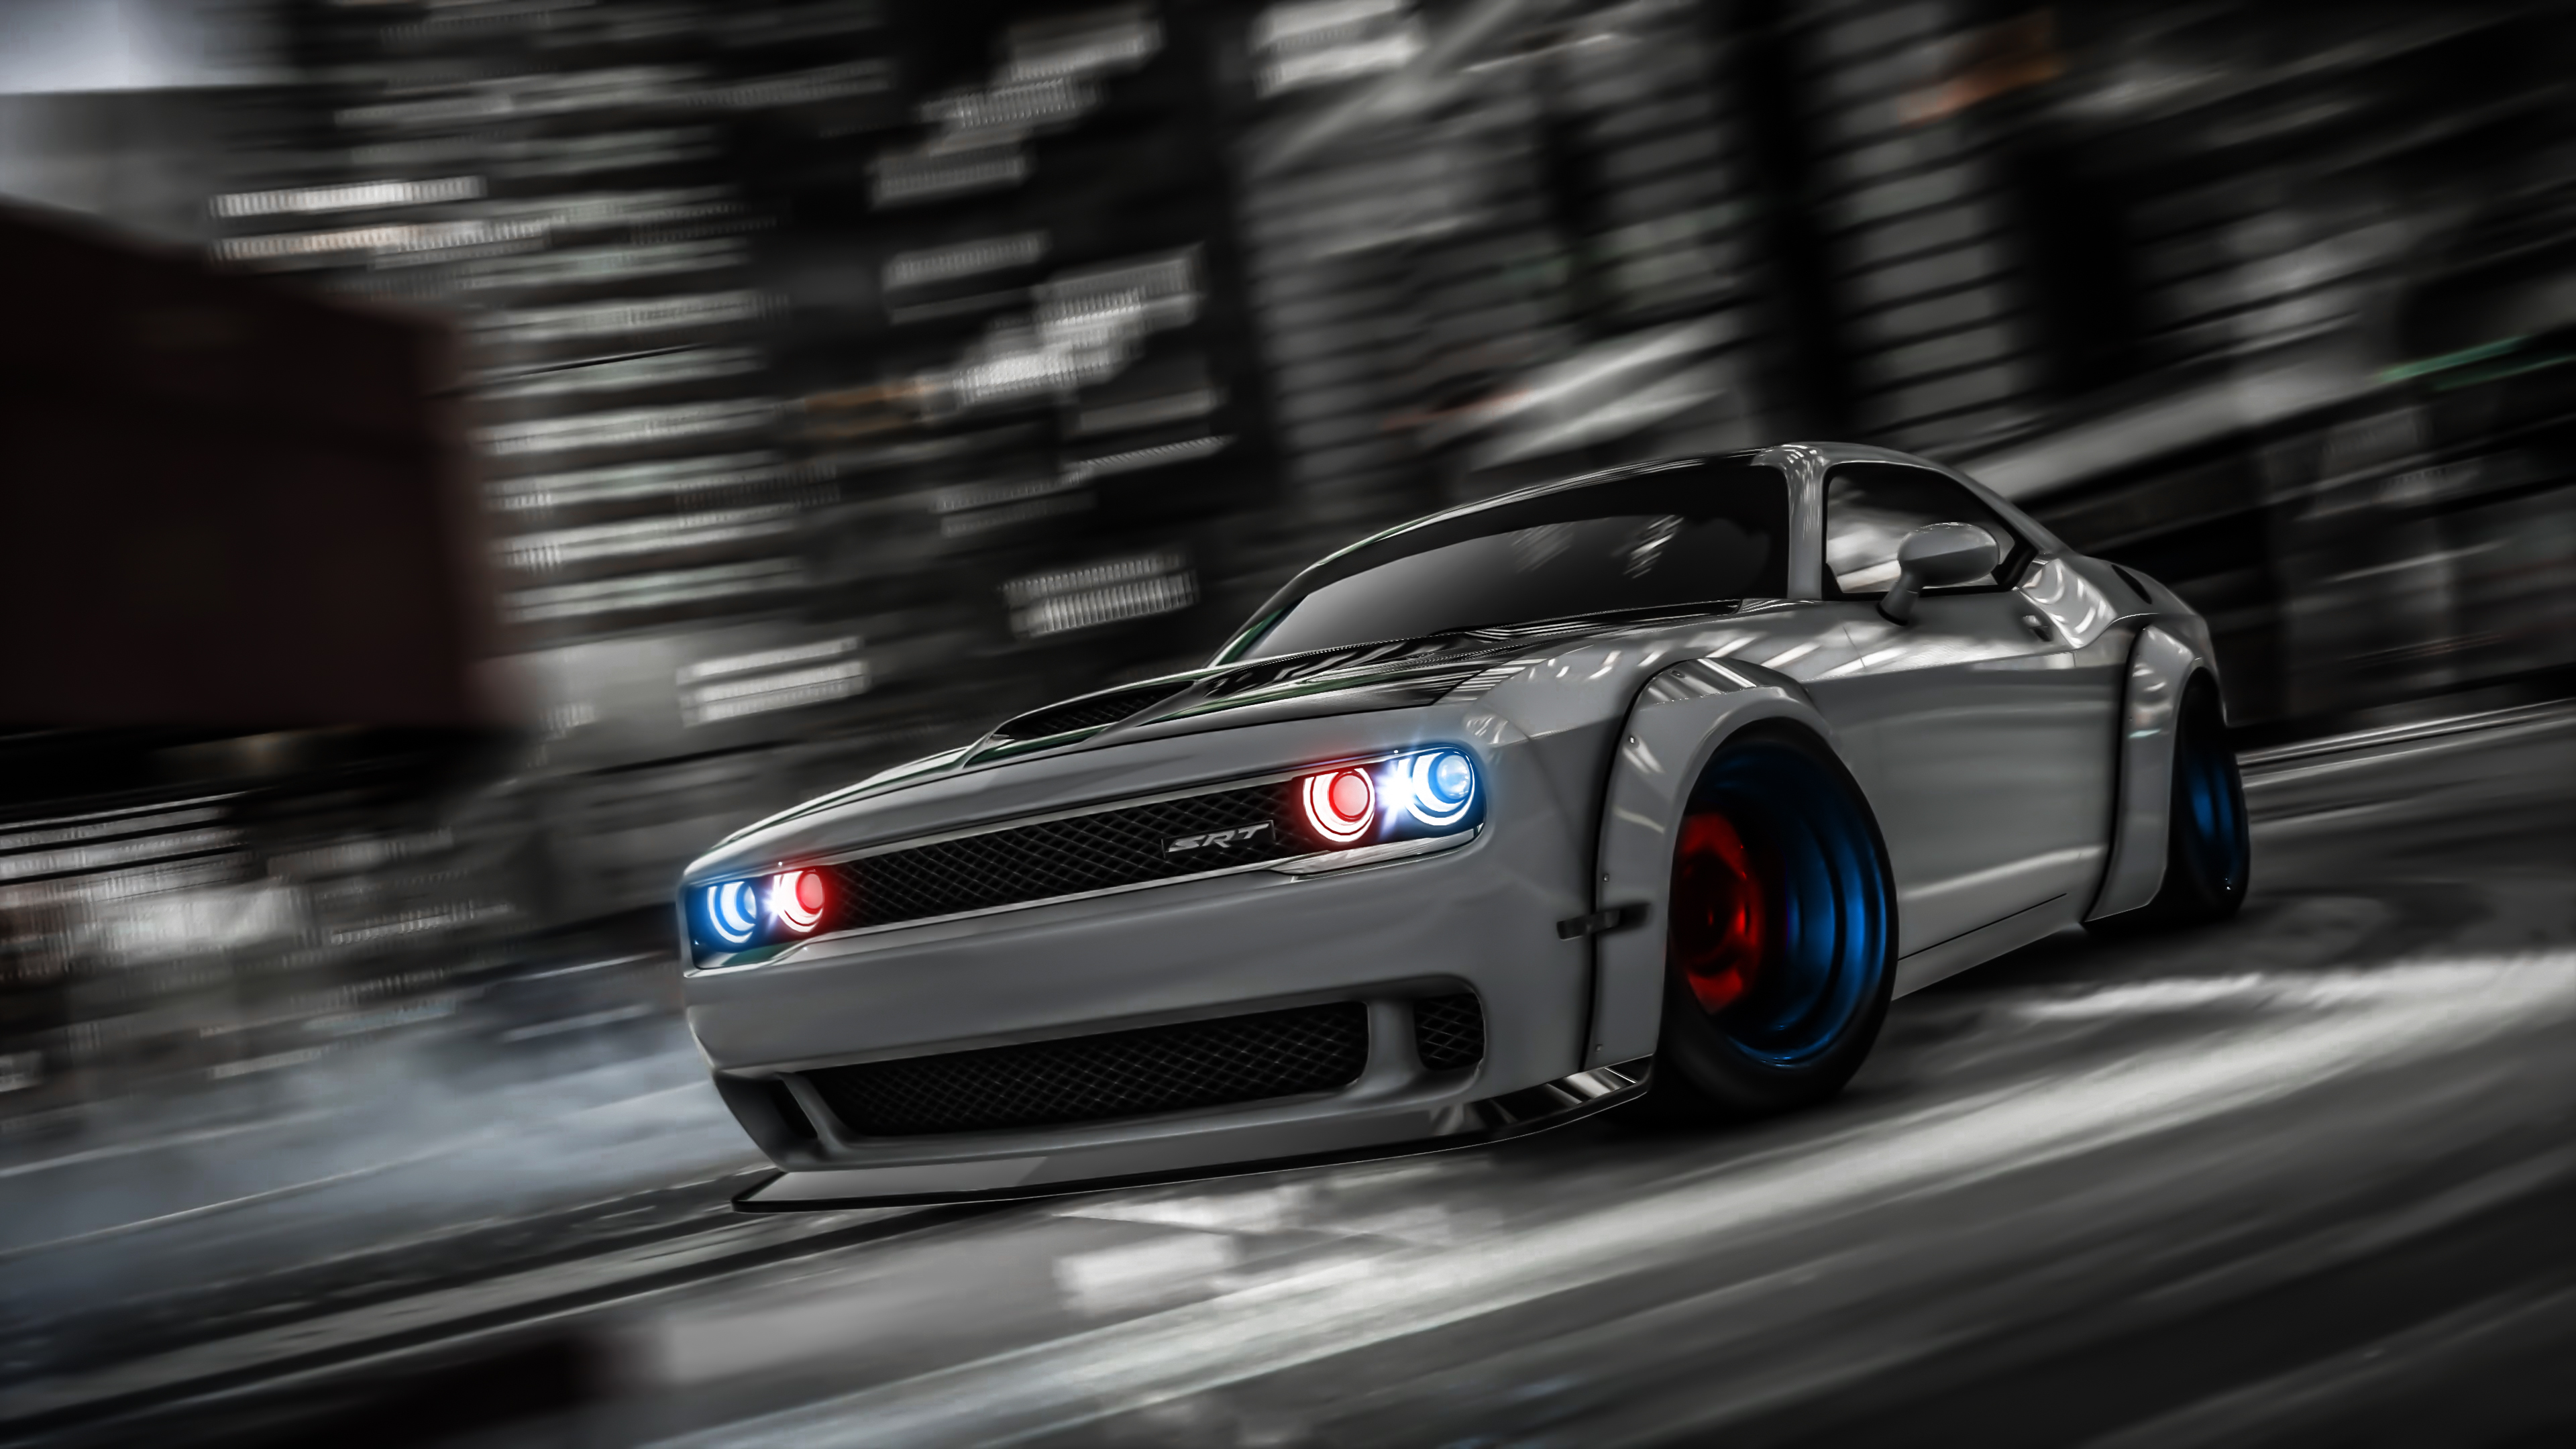 Gta V Hd Wallpapers Posted By Ryan Tremblay